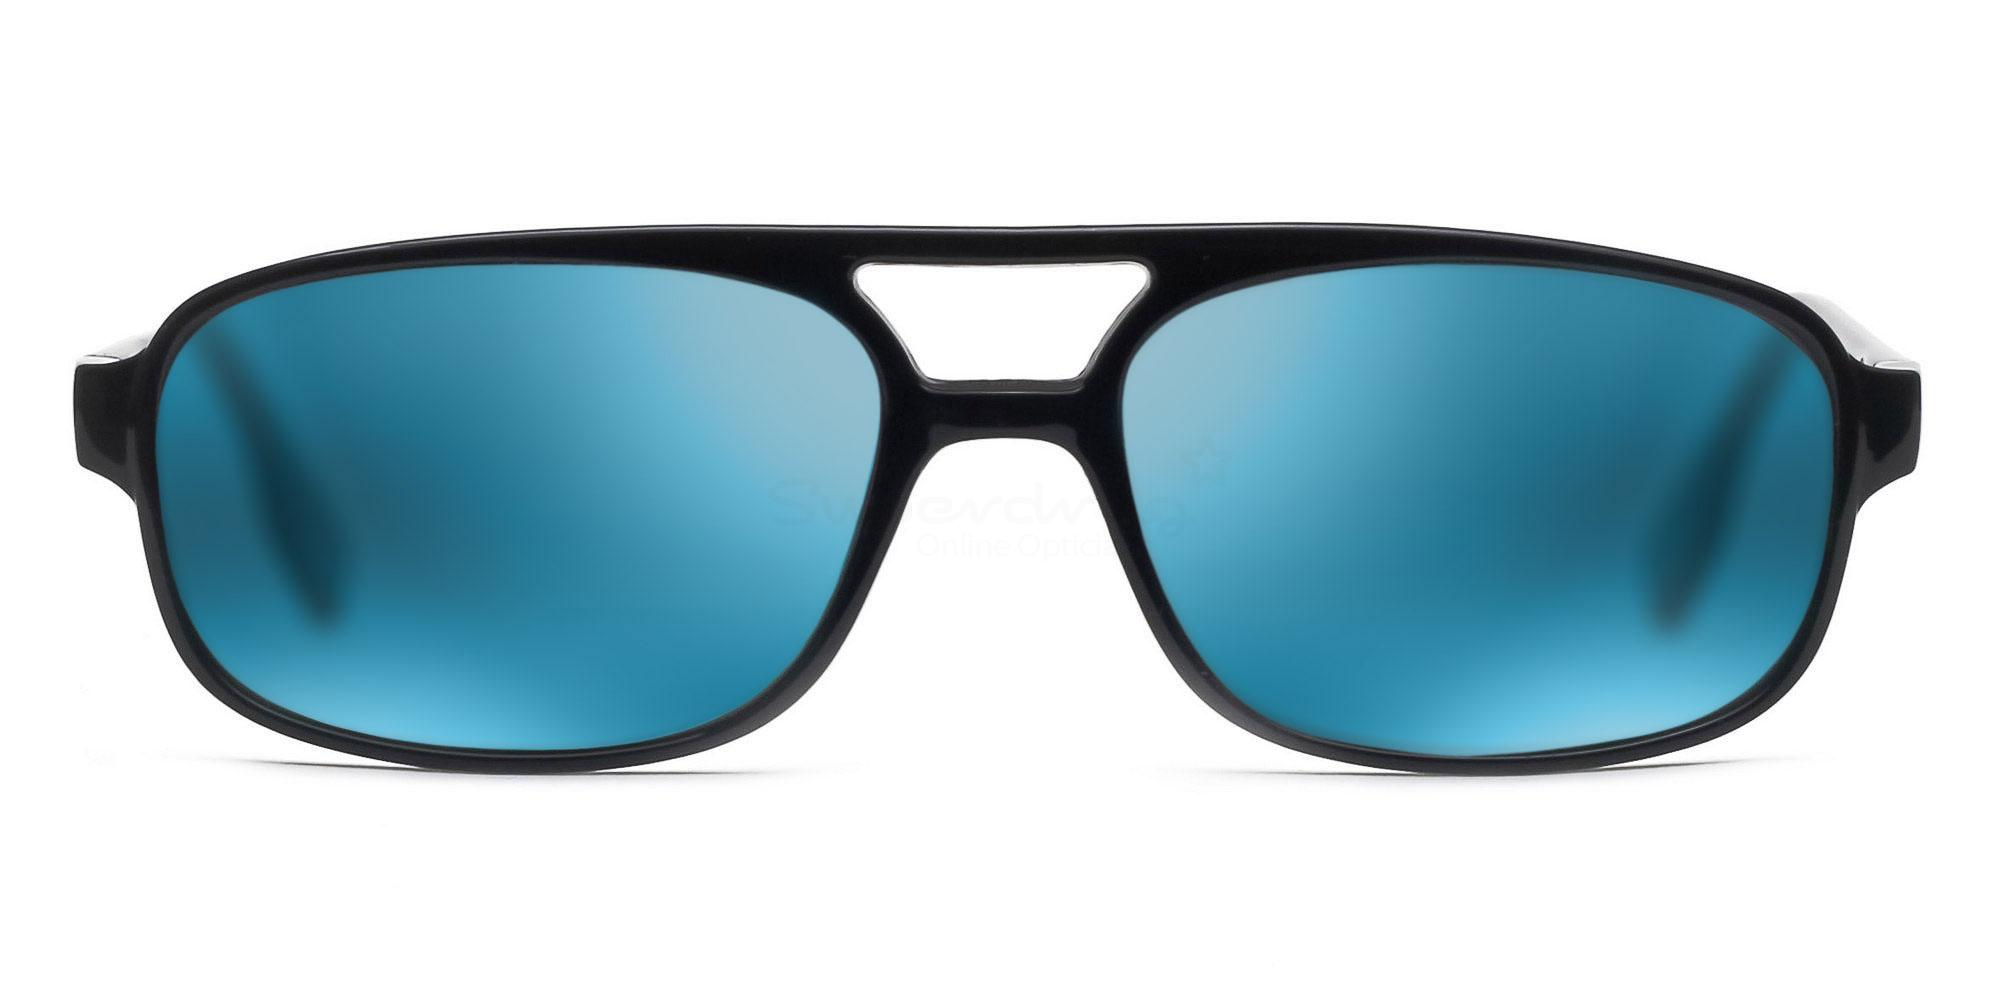 C01 Polarized Grey with Green Mirror P2395 - Black (Mirrored Polarized) Sunglasses, Neon